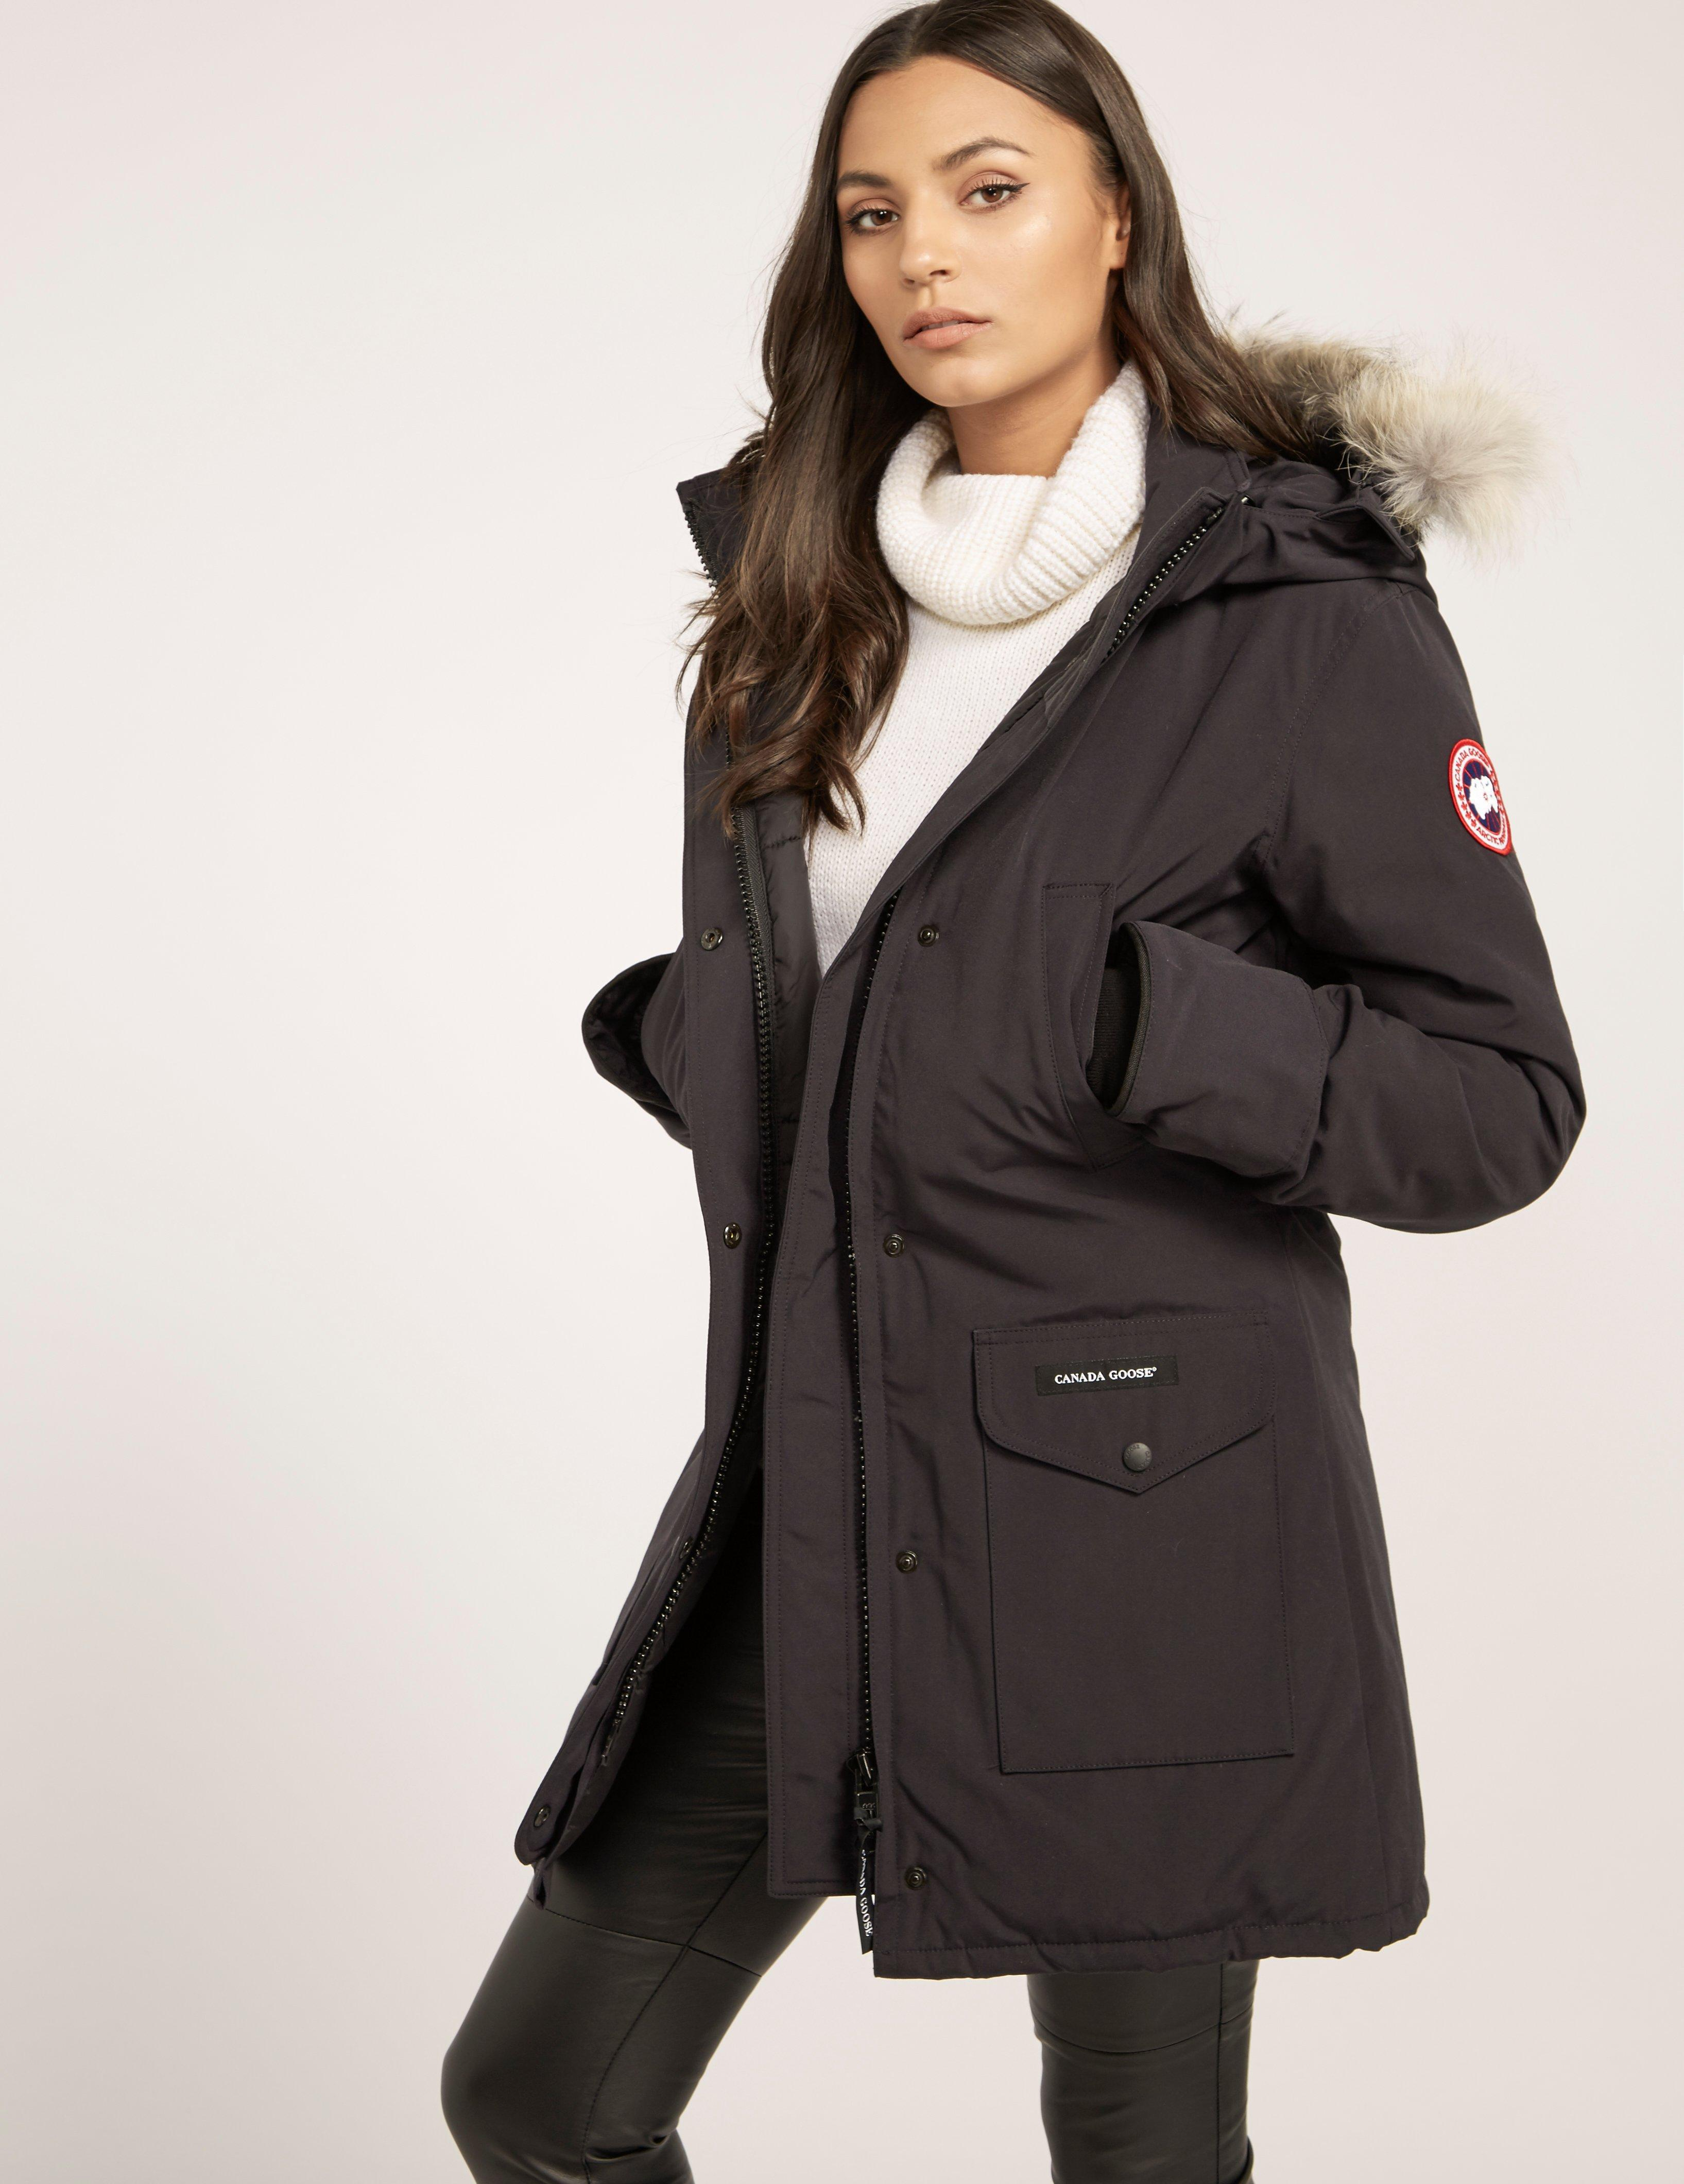 canada goose womens trillium padded parka jacket navy blue in blue rh lyst co uk  canada goose trillium womens parka jacket